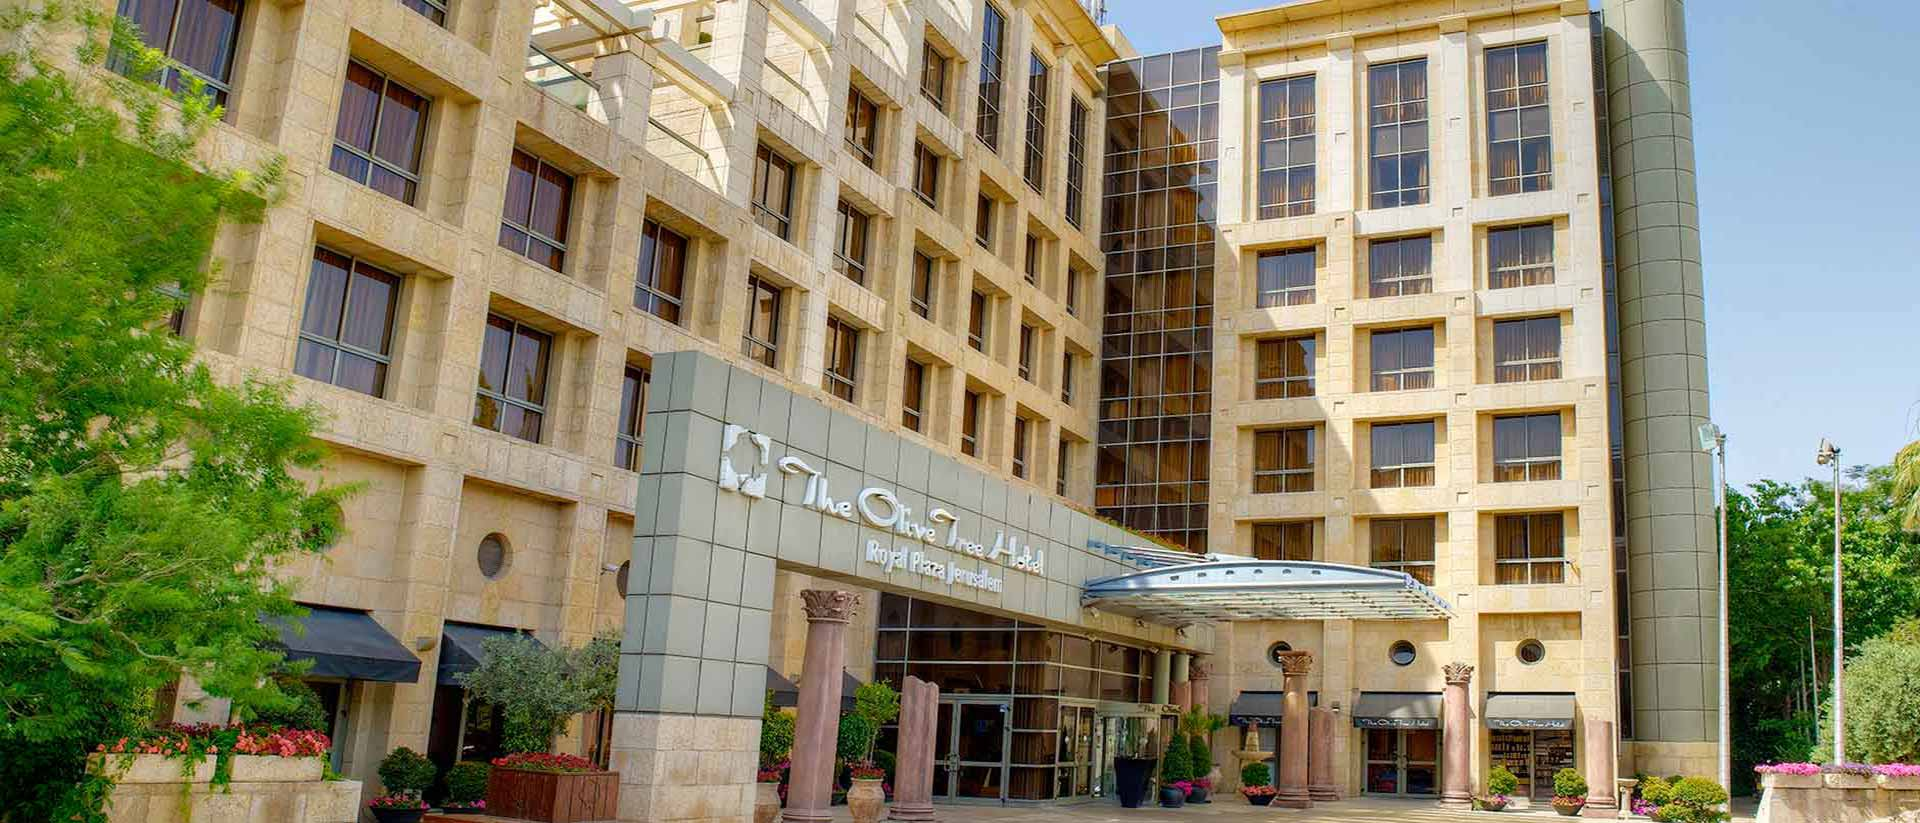 Hotel in jerusalem olive tree hotel jerusalem 39 s most for Hotels jerusalem